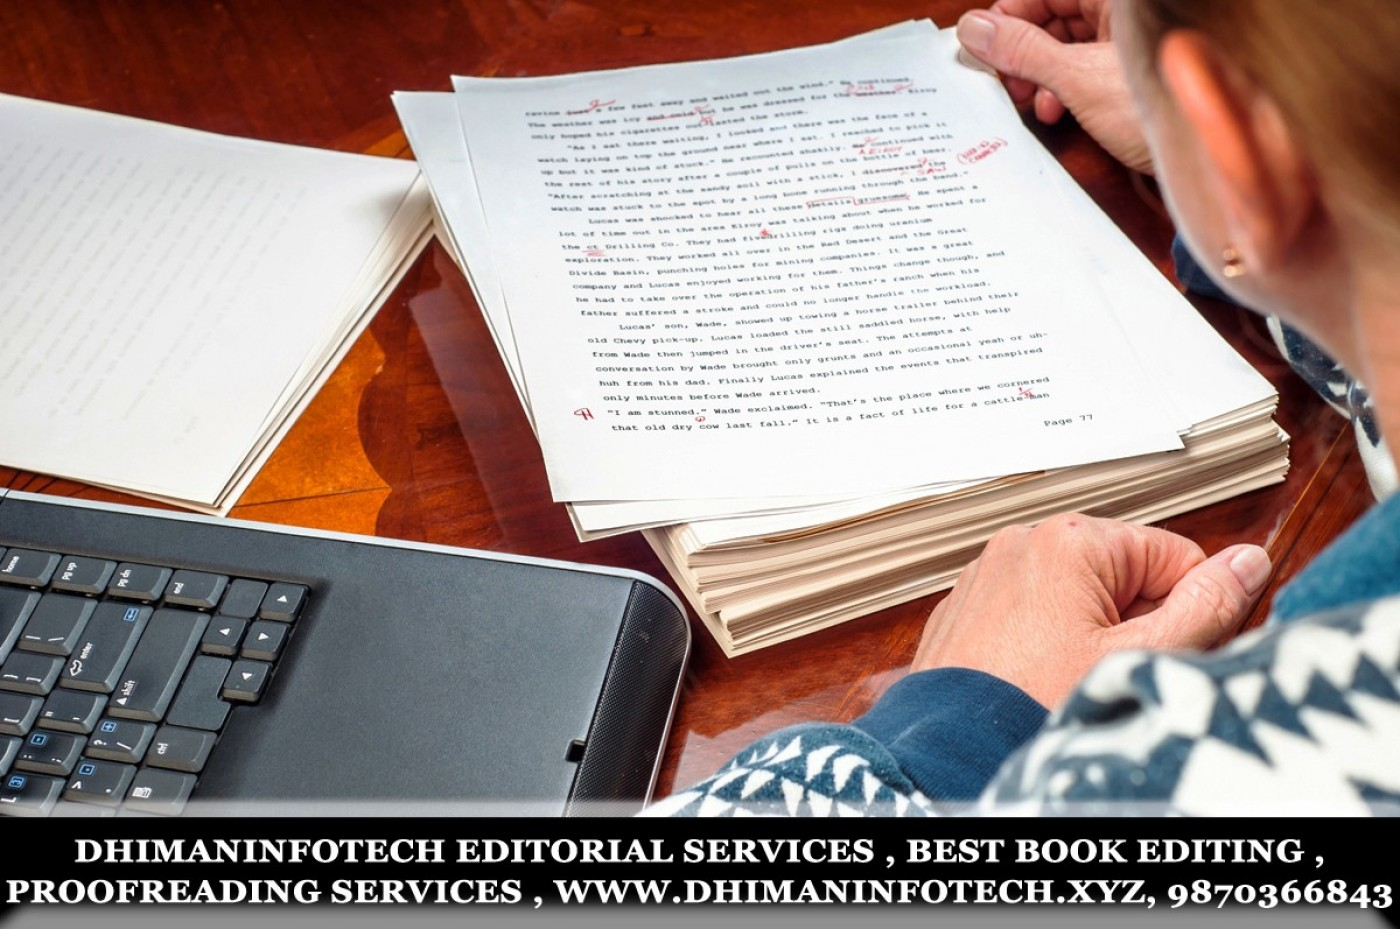 006 1rgqlqp3xusy1phsl8tb Fw Research Paper Best Editing Writing Services Academic Jobs Free Software 1400